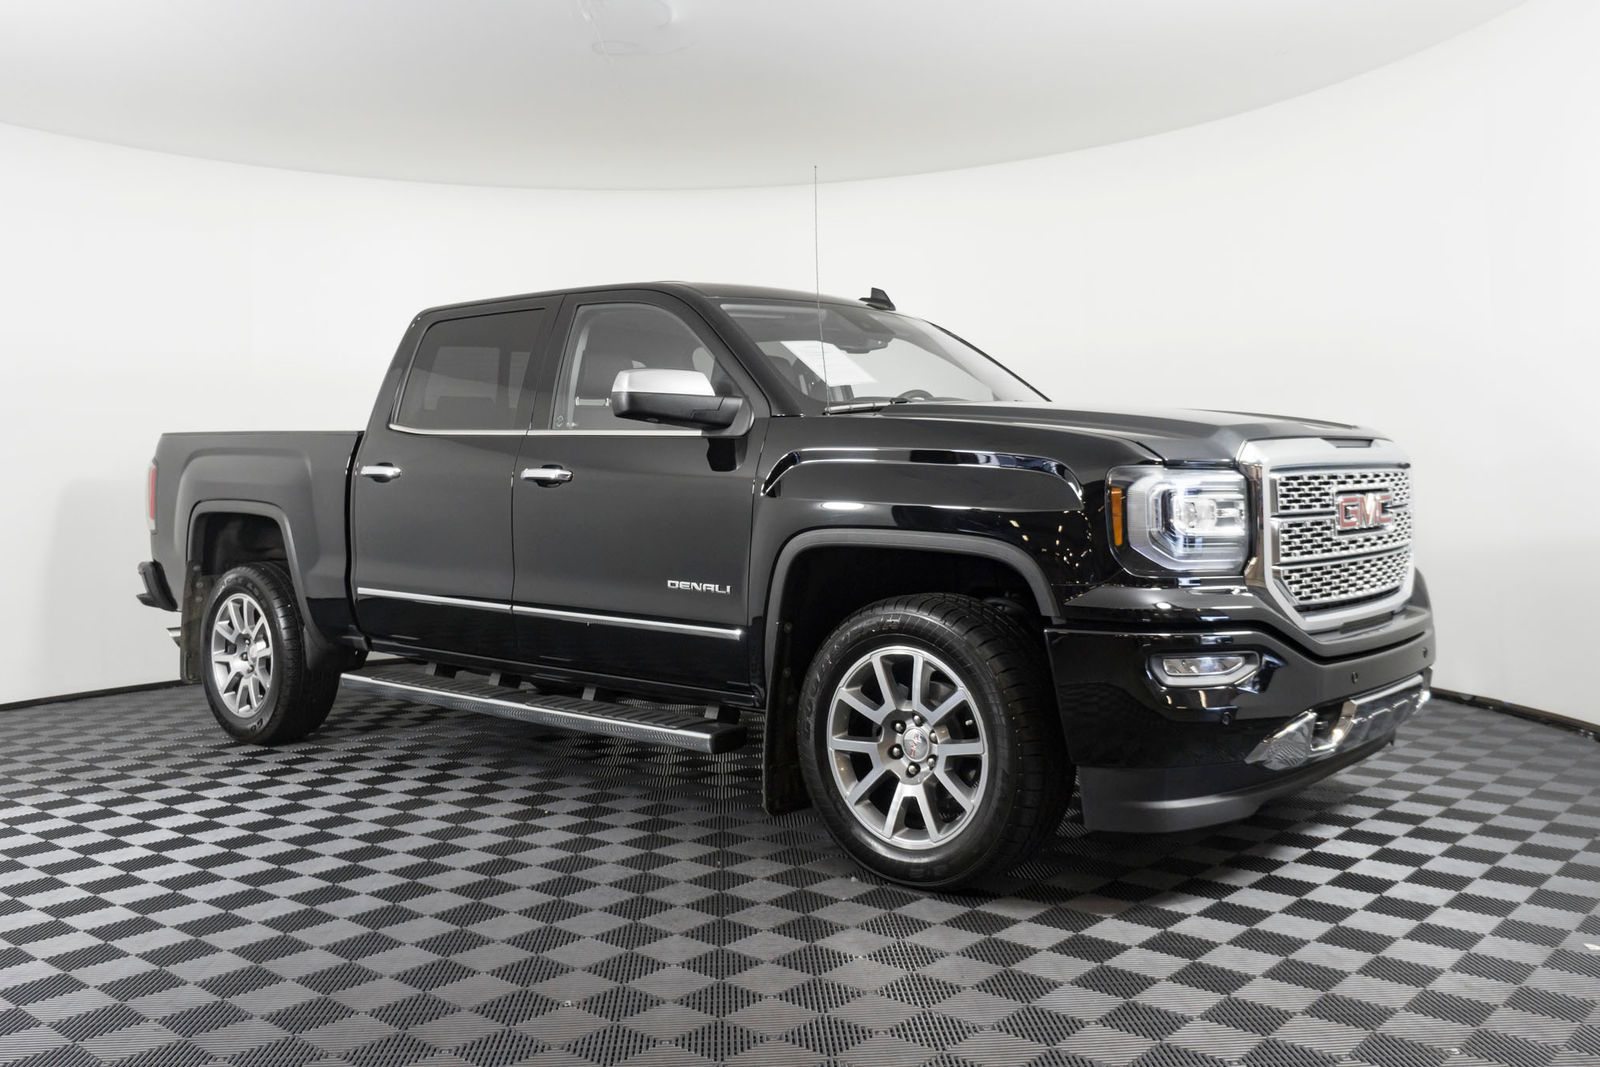 Used 2018 Gmc Sierra 1500 Denali 4x4 Truck For Sale Gmc Sierra